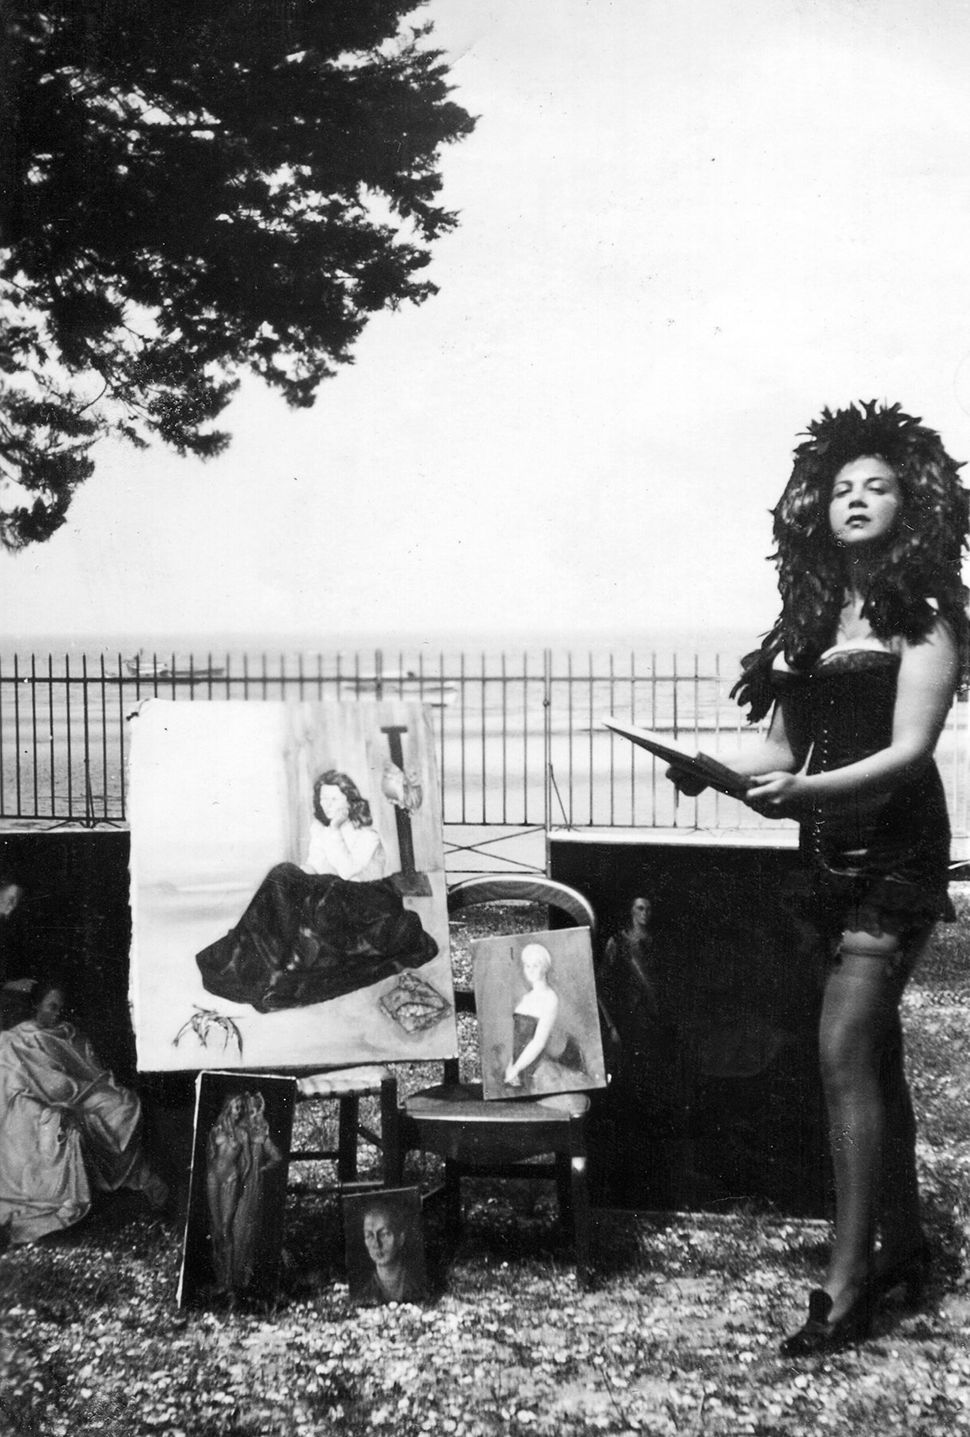 Leonor Fini painting in a feather headdress.